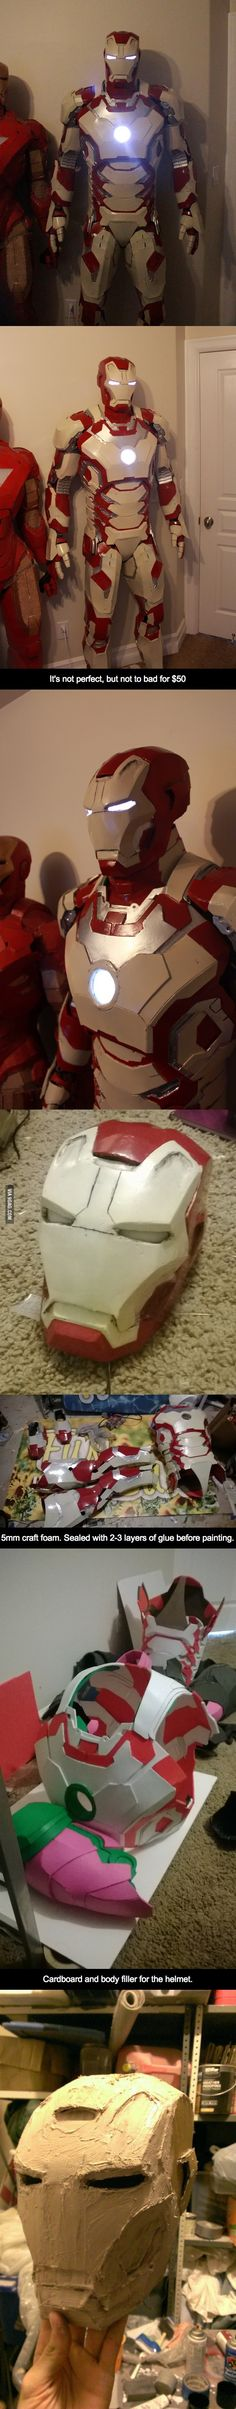 $50 Homemade Iron Man. Totally going to make this one day...